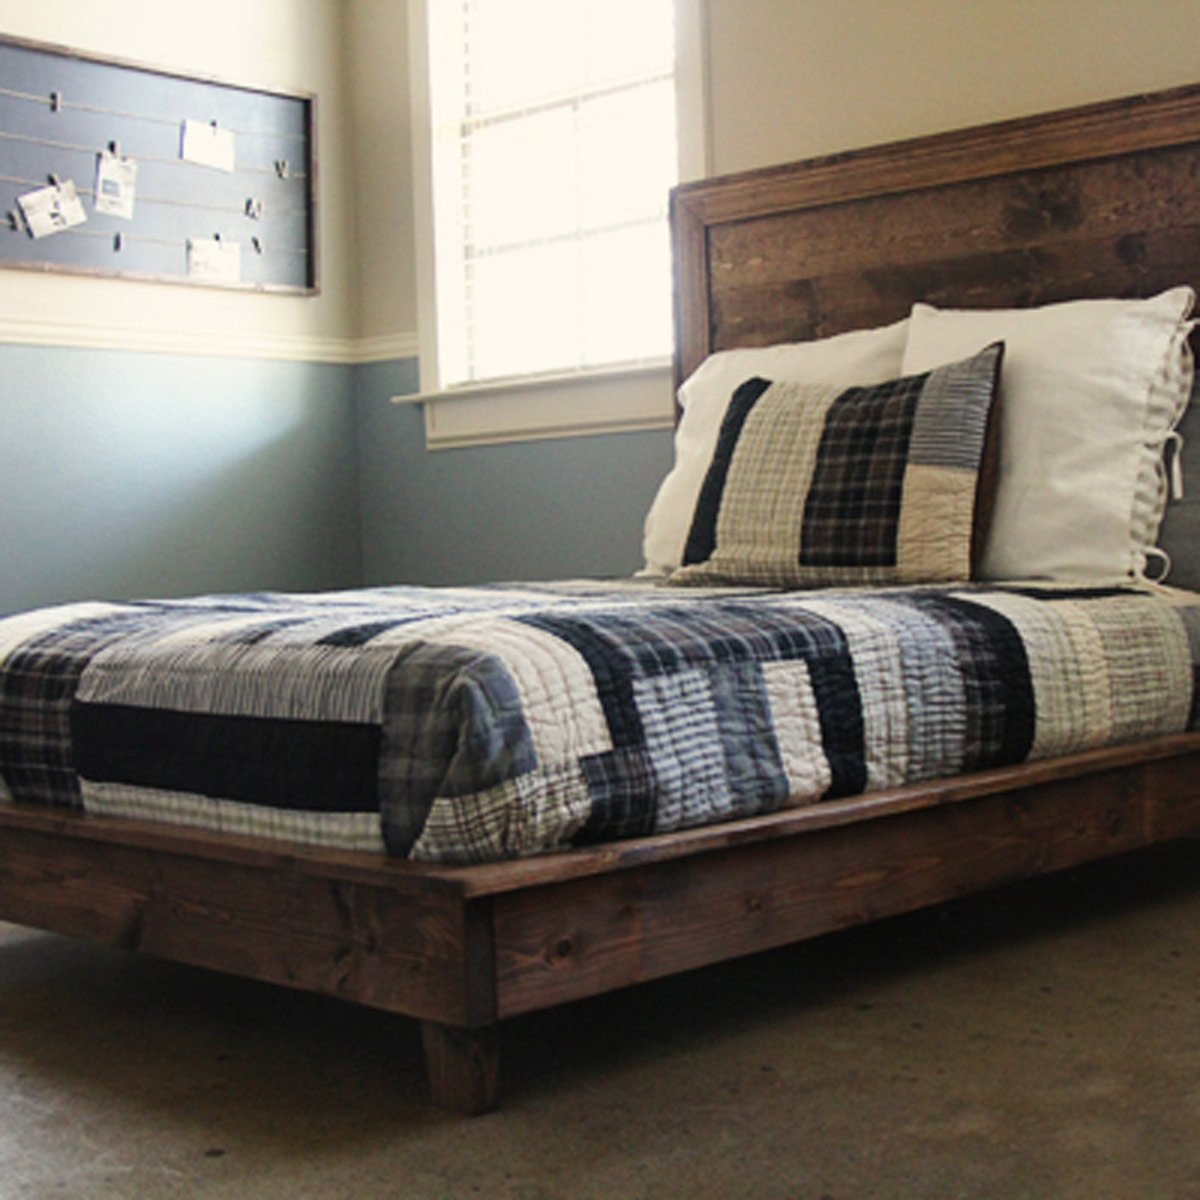 DIY Wooden Bed Frame With Storage  10 Awesome DIY Platform Bed Designs — The Family Handyman